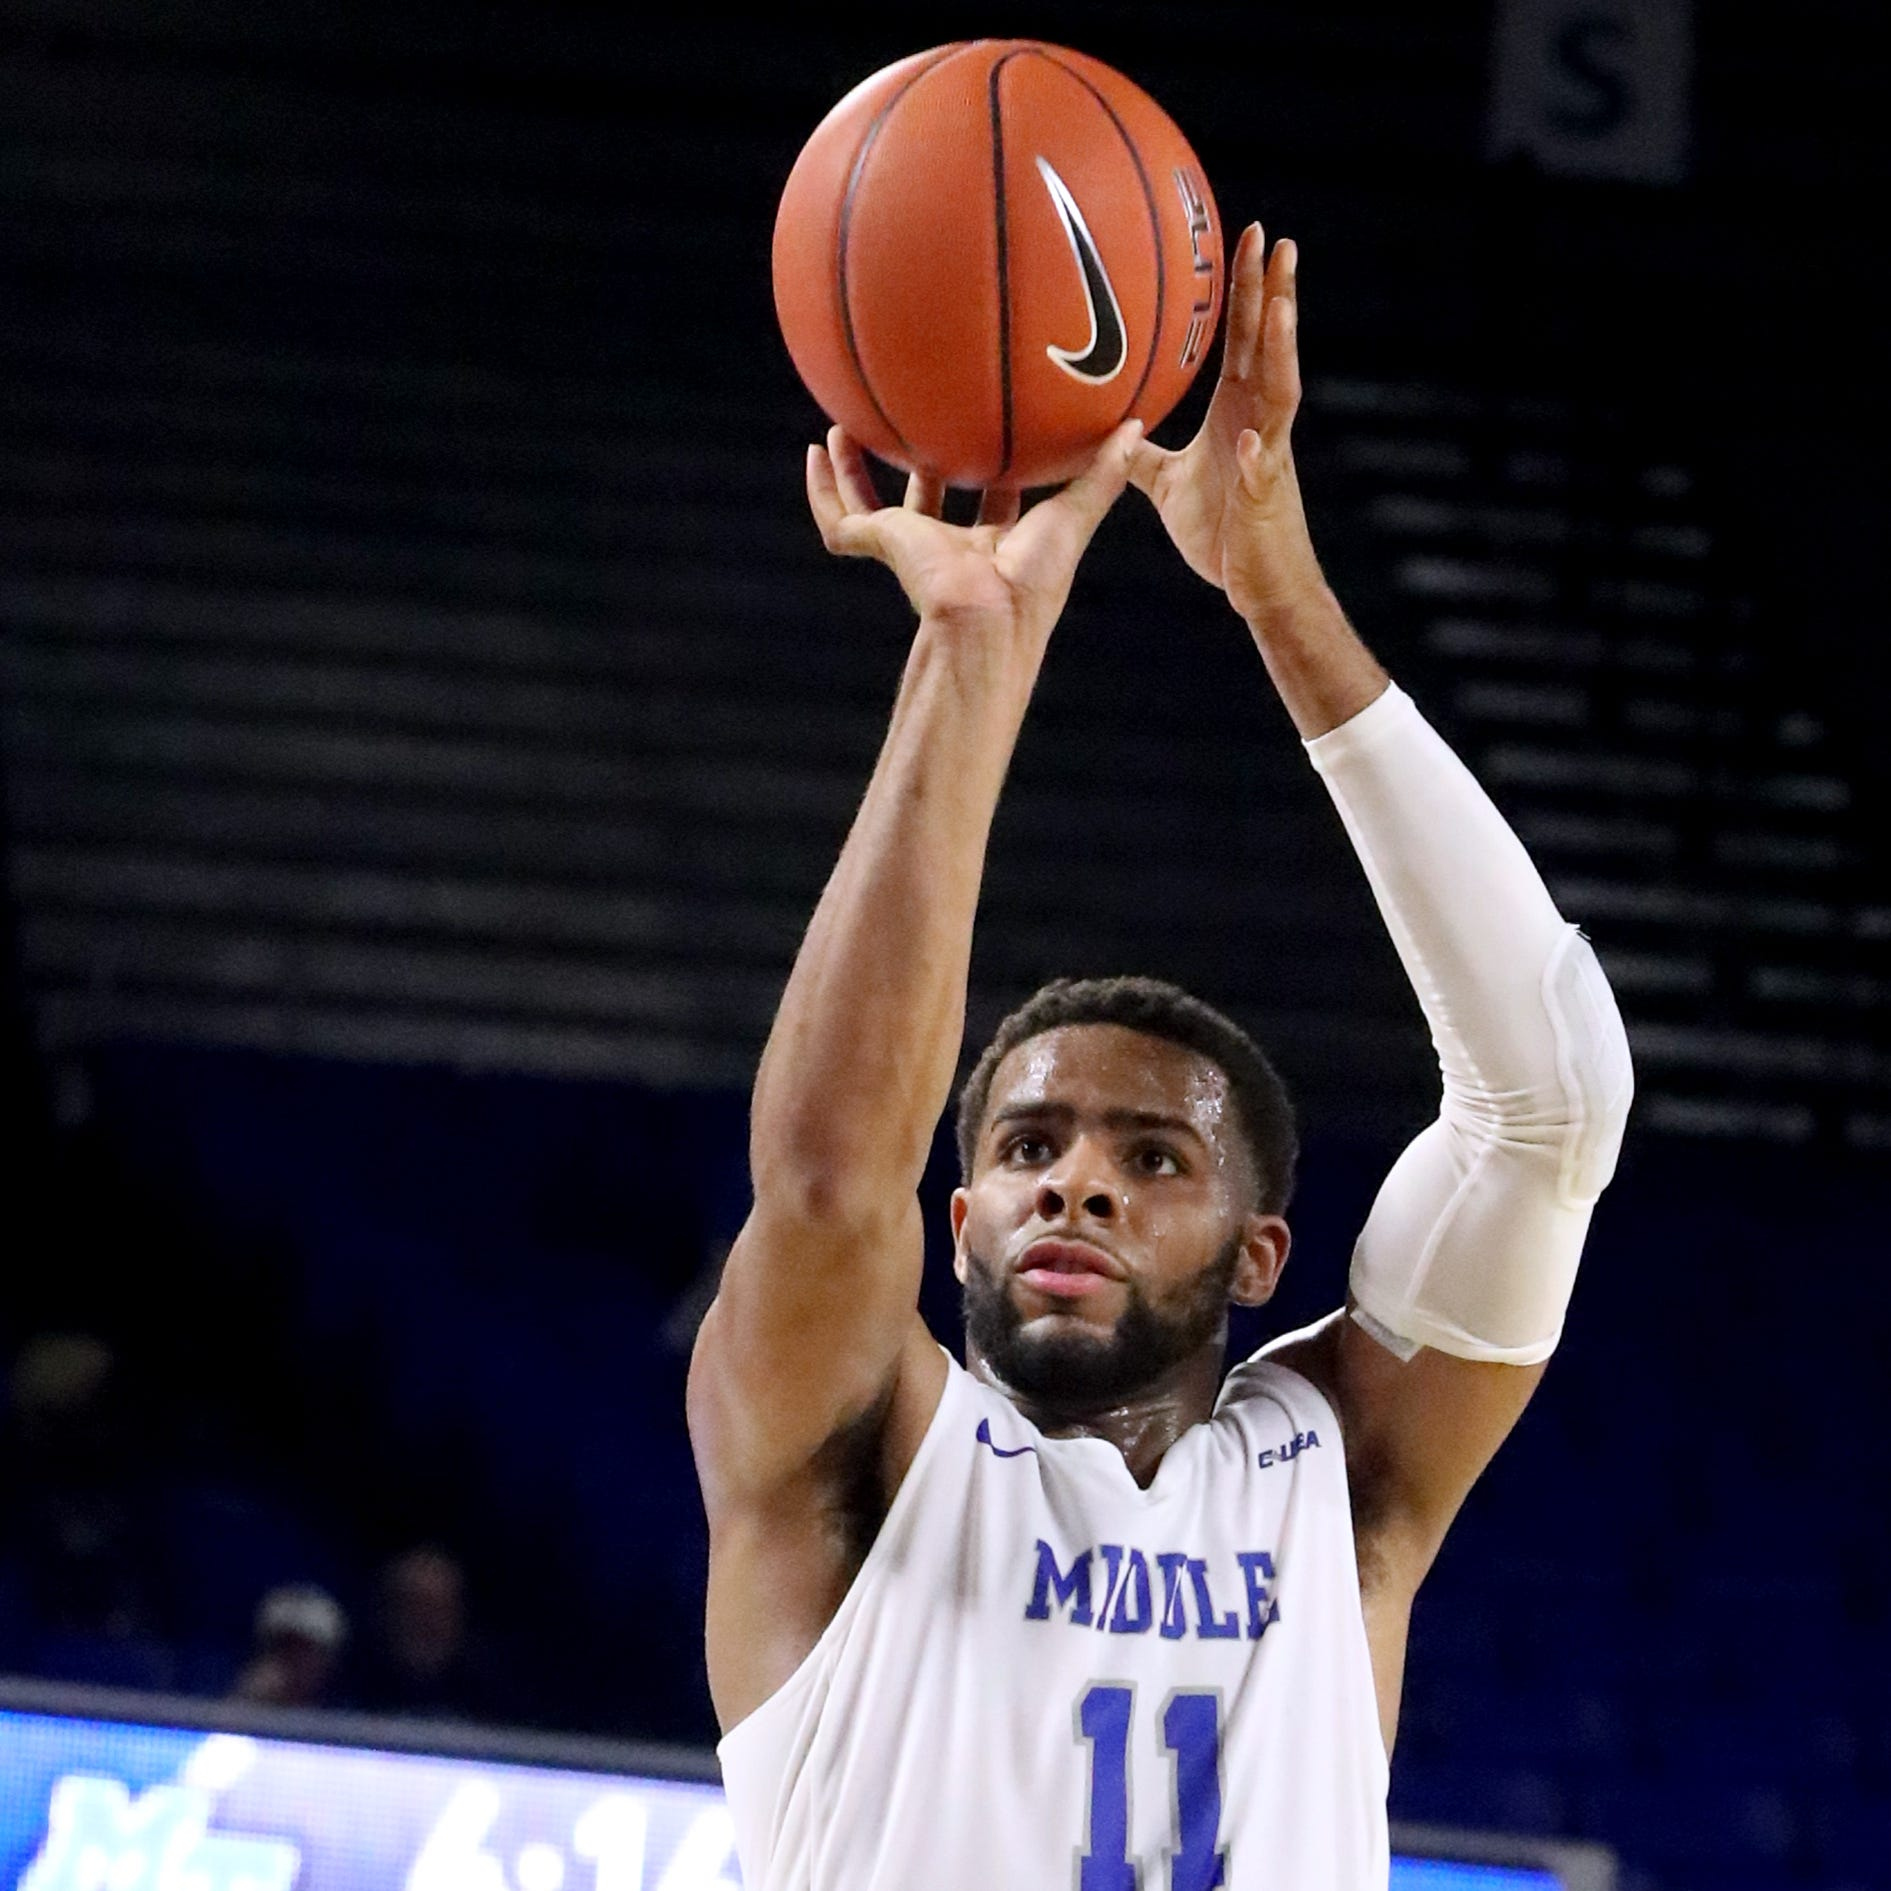 Walk-ons play a big role in MTSU's senior night win over UTEP